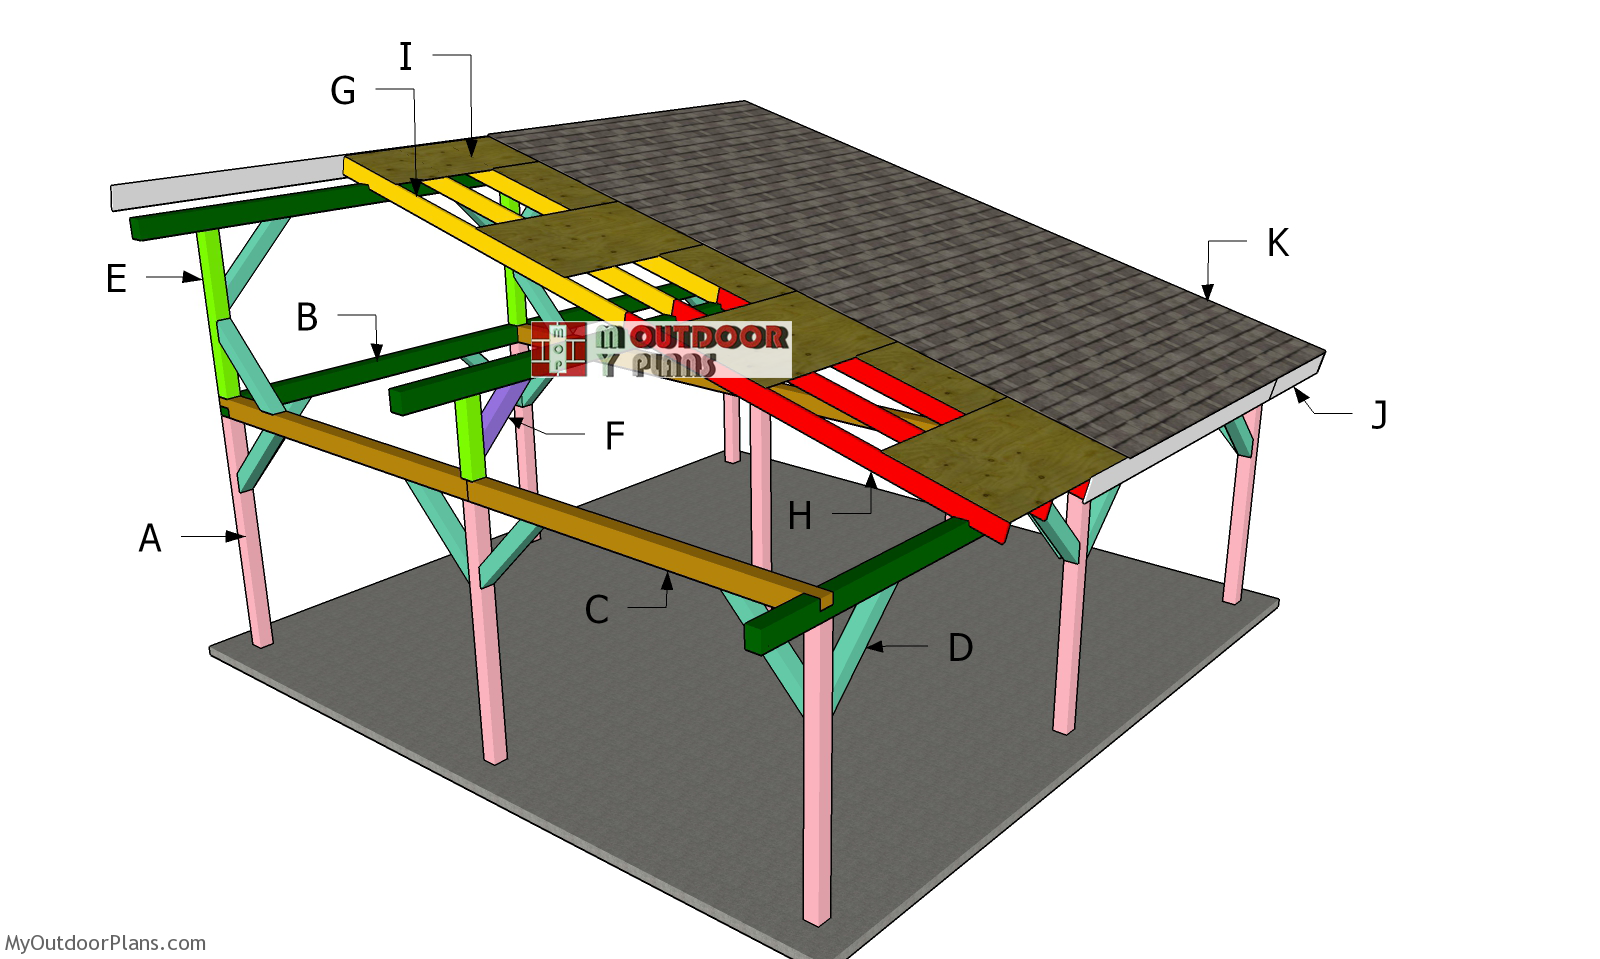 24x24 Lean to Pavilion Roof Plans